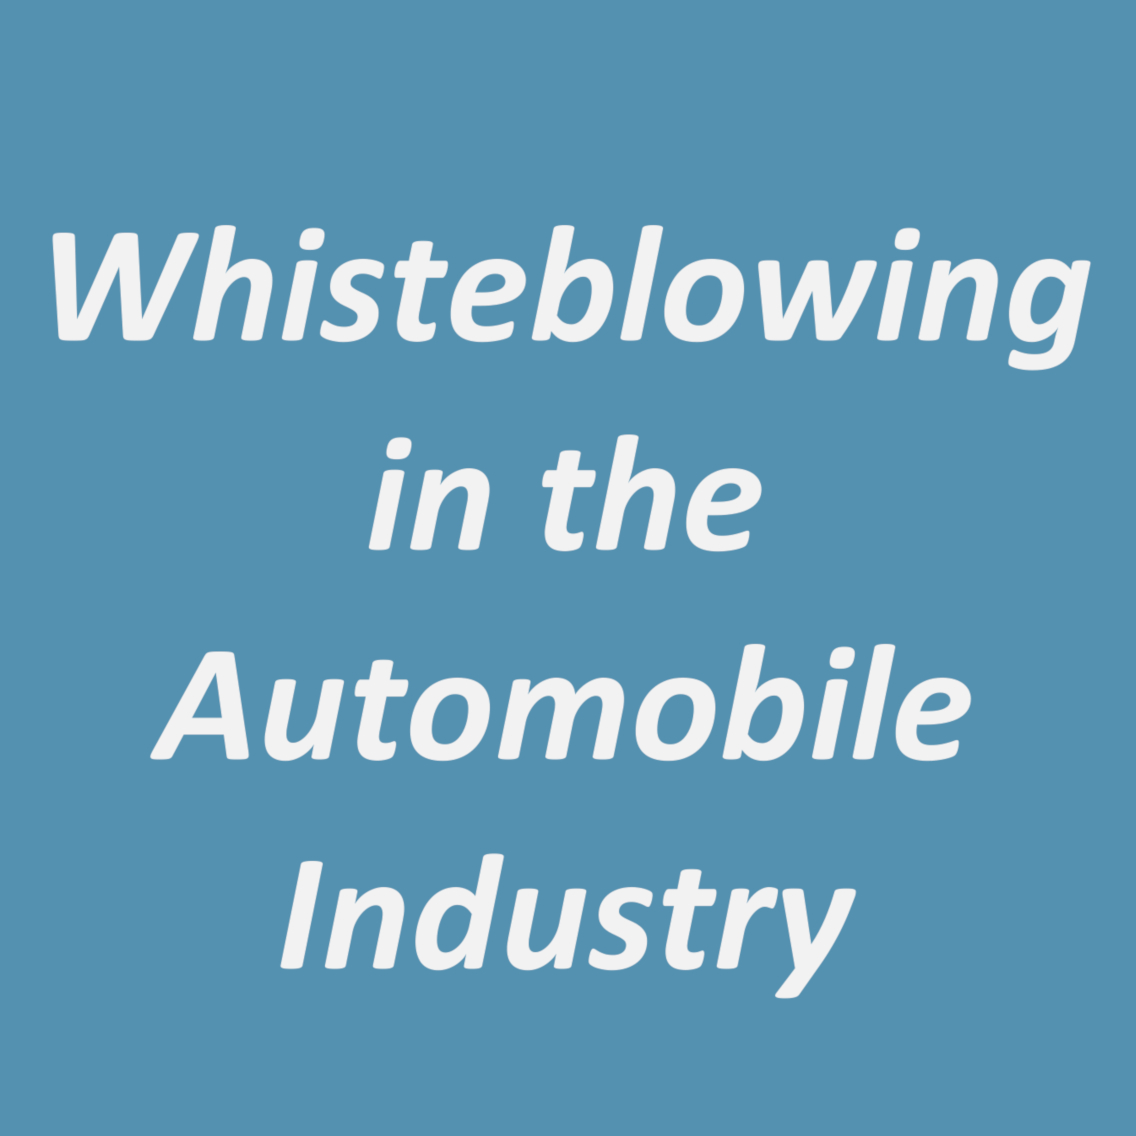 A 1-Day Whistleblowing in the Automobile Industry Sector Training Session (JHB)